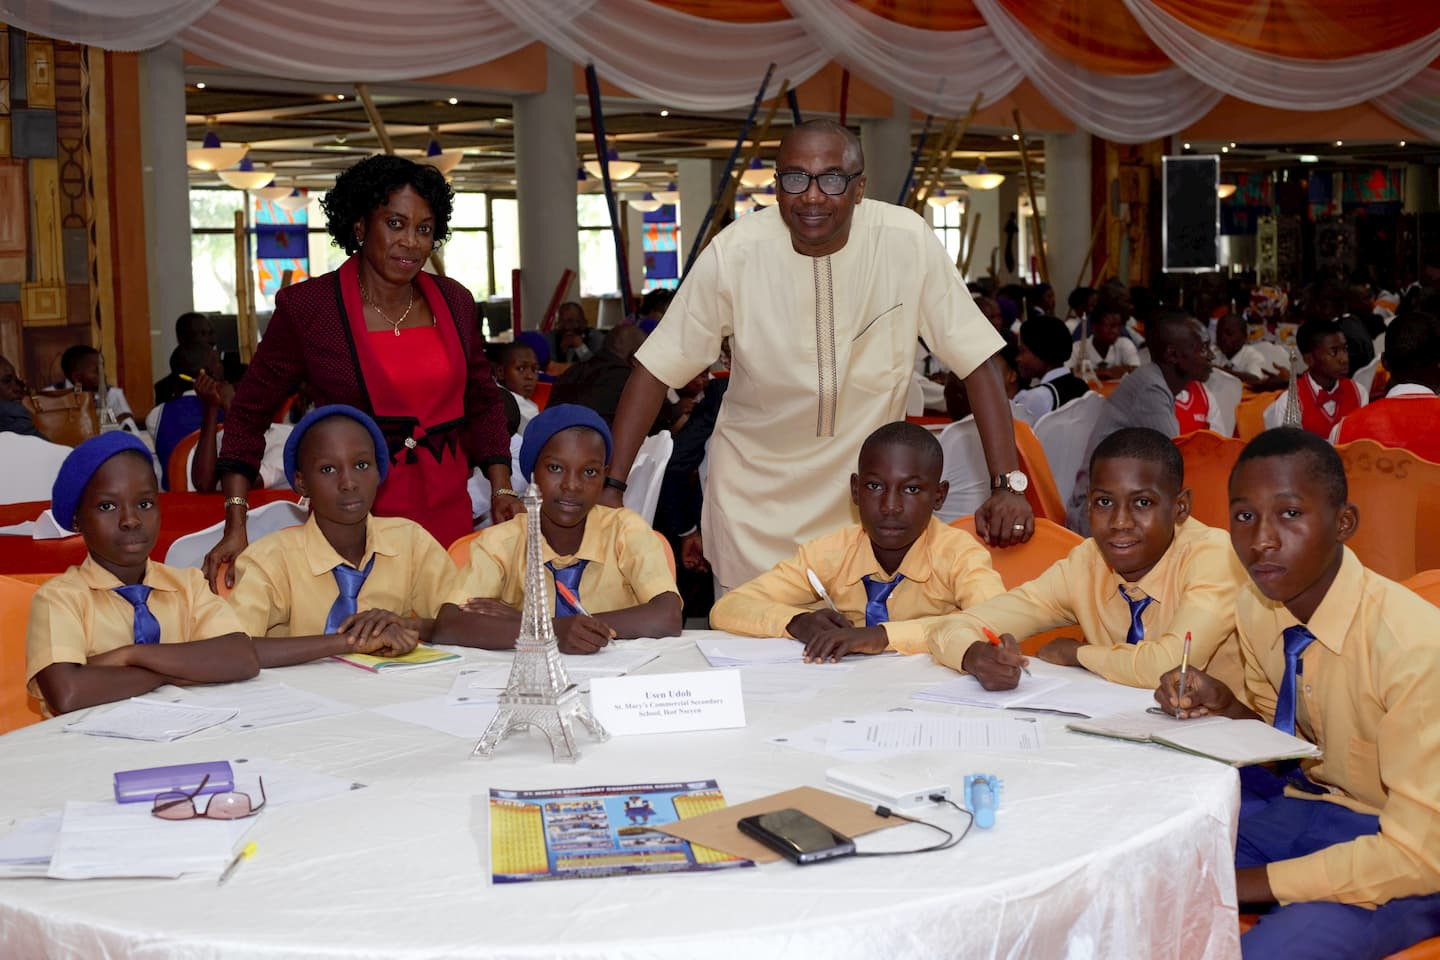 Mr. Usen Udoh and the students of his adopted school St. Mary's Sec. Com. Sch Ikot Nseyen